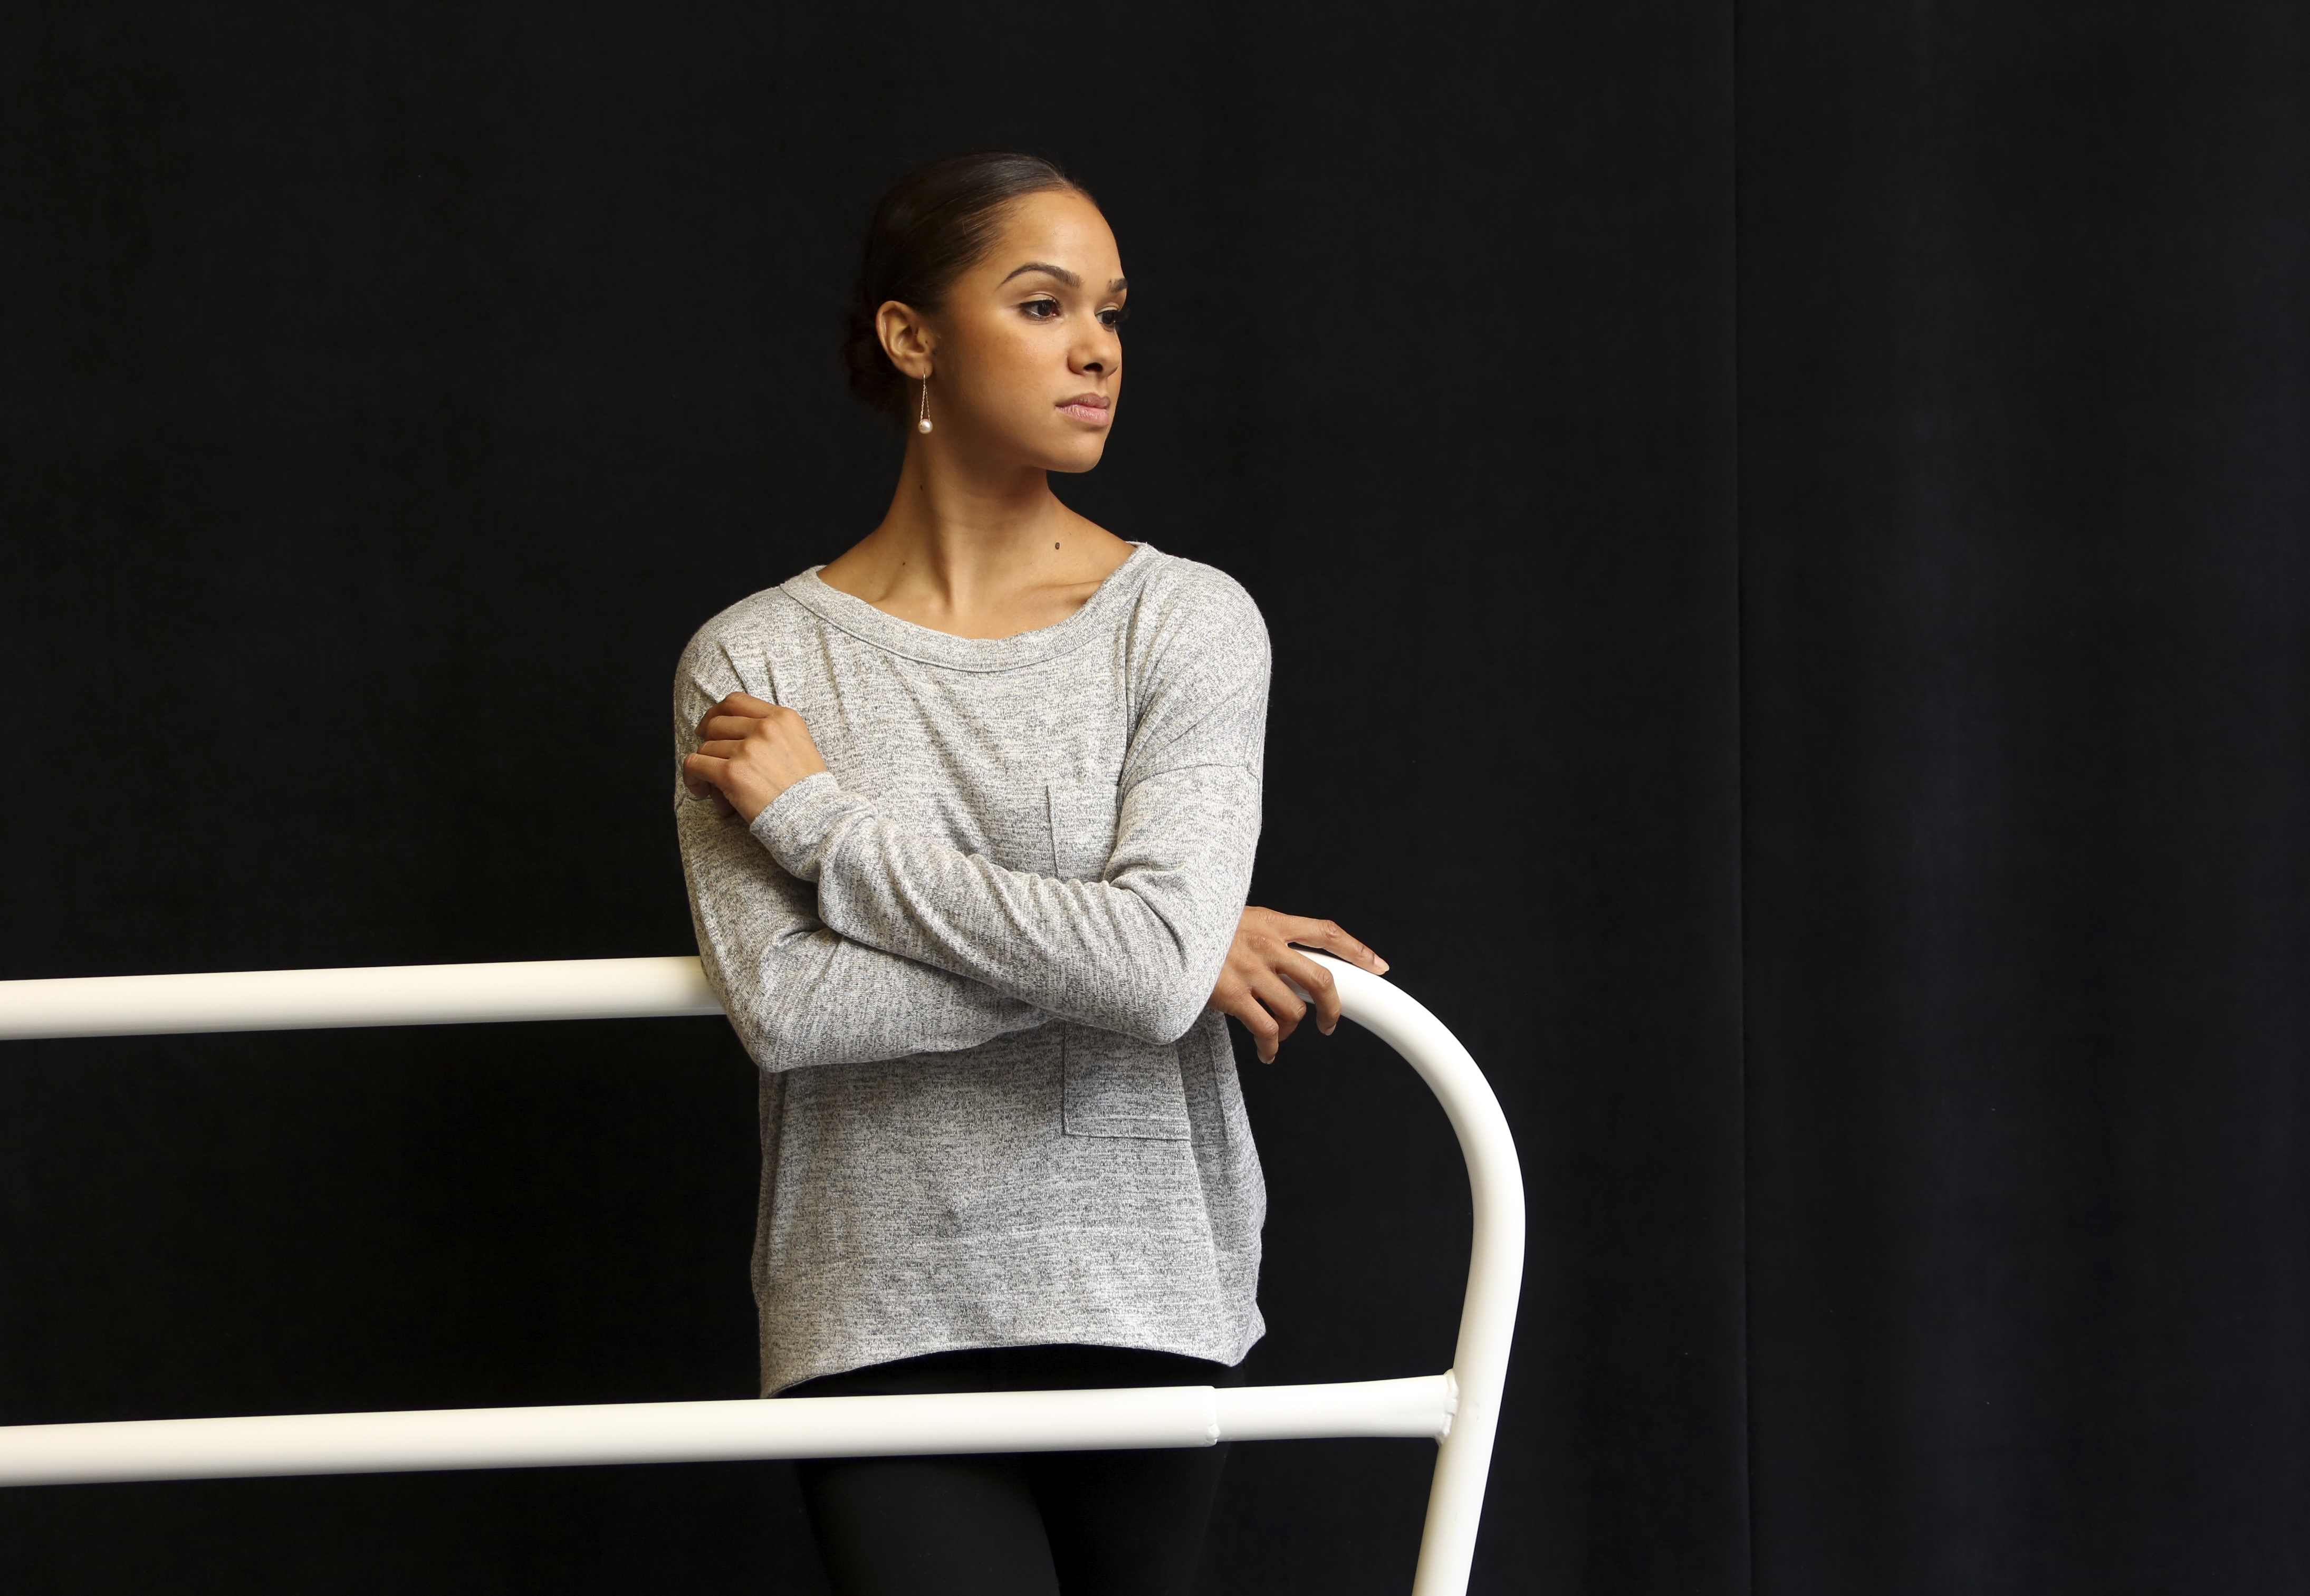 Misty Copeland, shown during a rehearsal in 2014, became the first African-American female principal dancer in the American Ballet Theater's 75-year history.